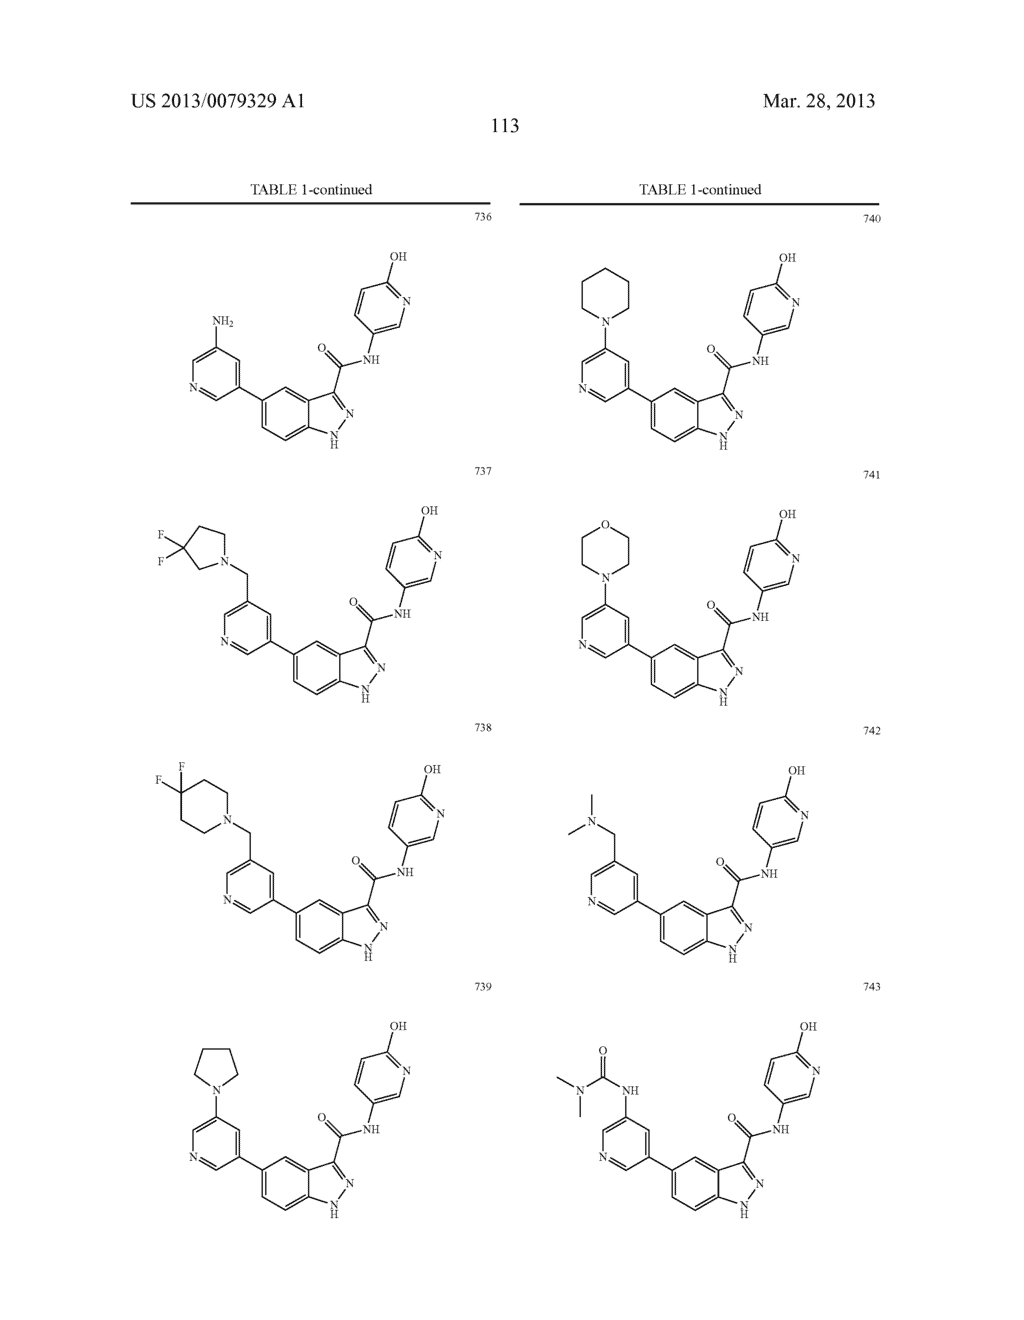 INDAZOLE-3-CARBOXAMIDES AND THEIR USE AS WNT/Beta-CATENIN SIGNALING     PATHWAY INHIBITORS - diagram, schematic, and image 114